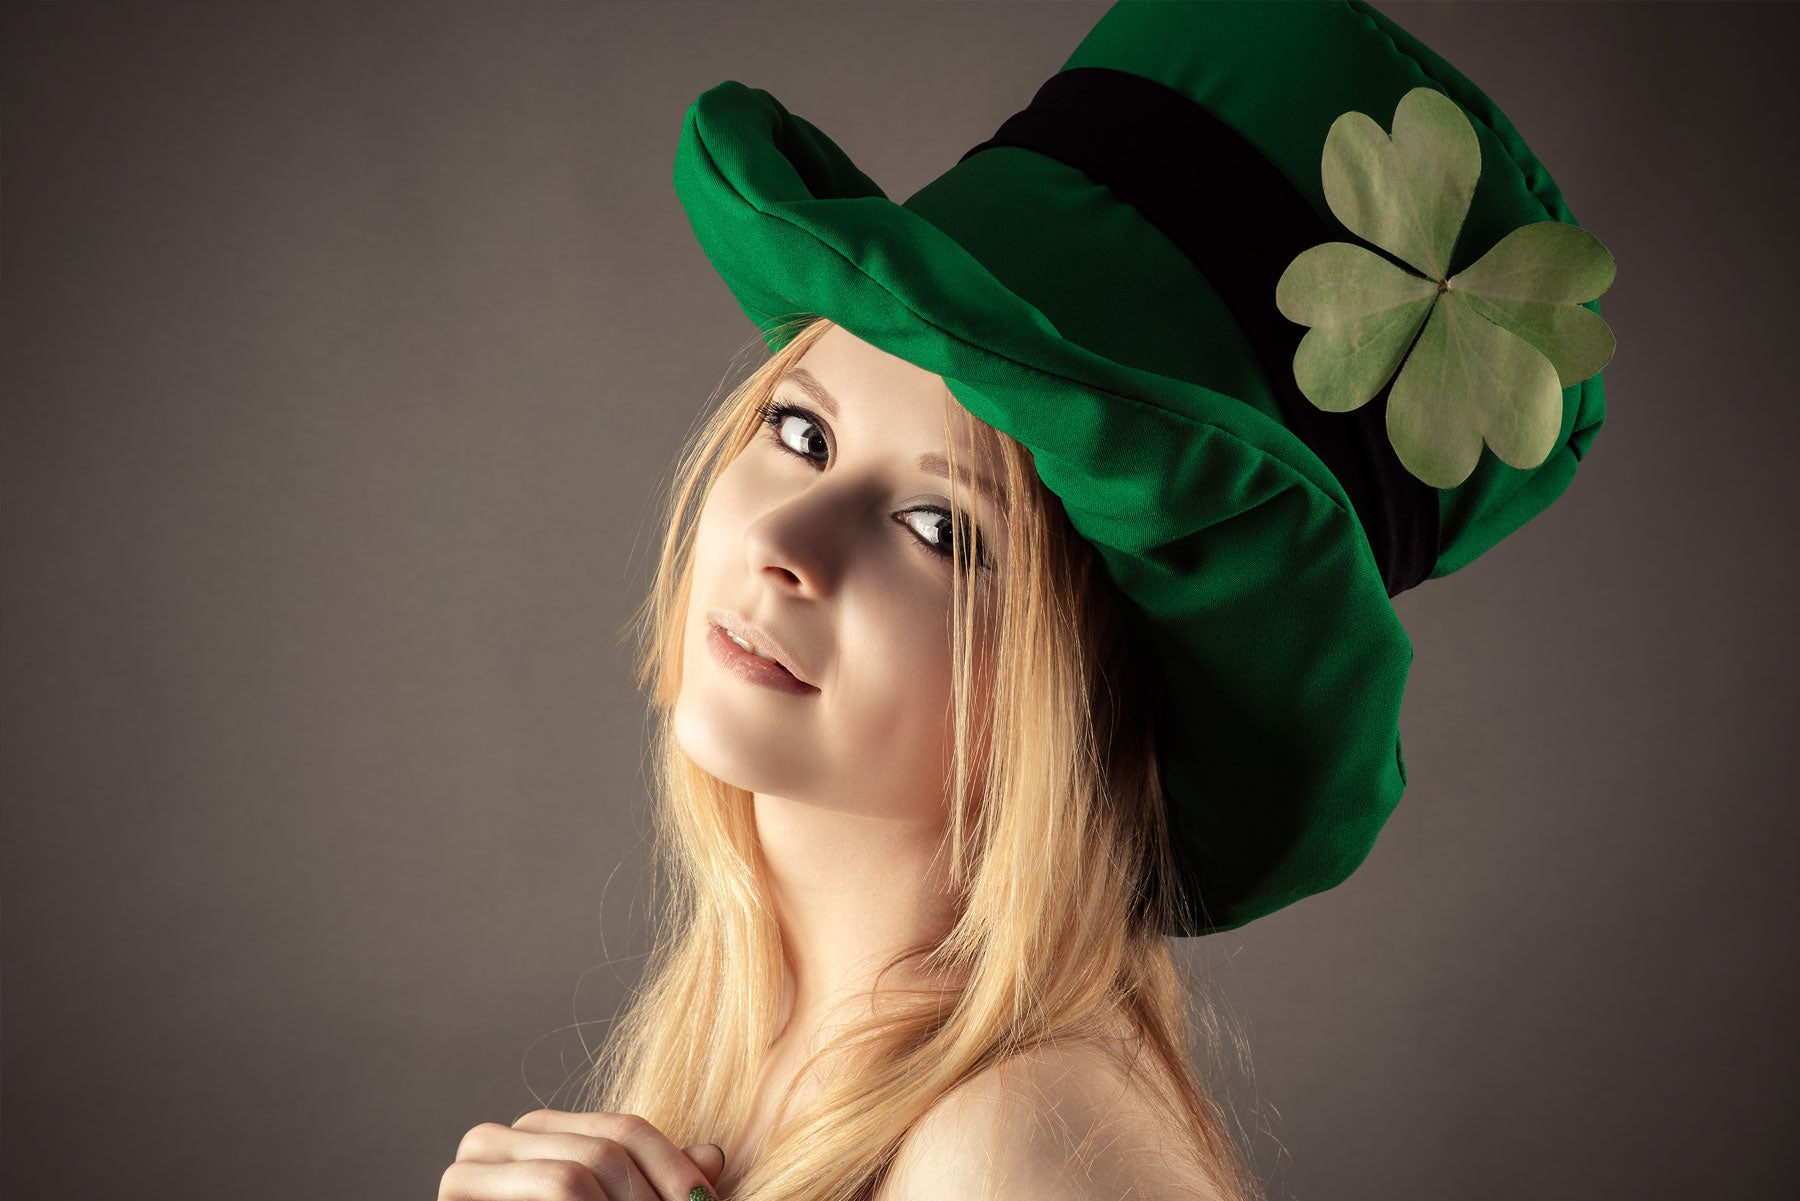 A Comprehensive St. Patrick's Day Style Guide - Look You're Best In Green